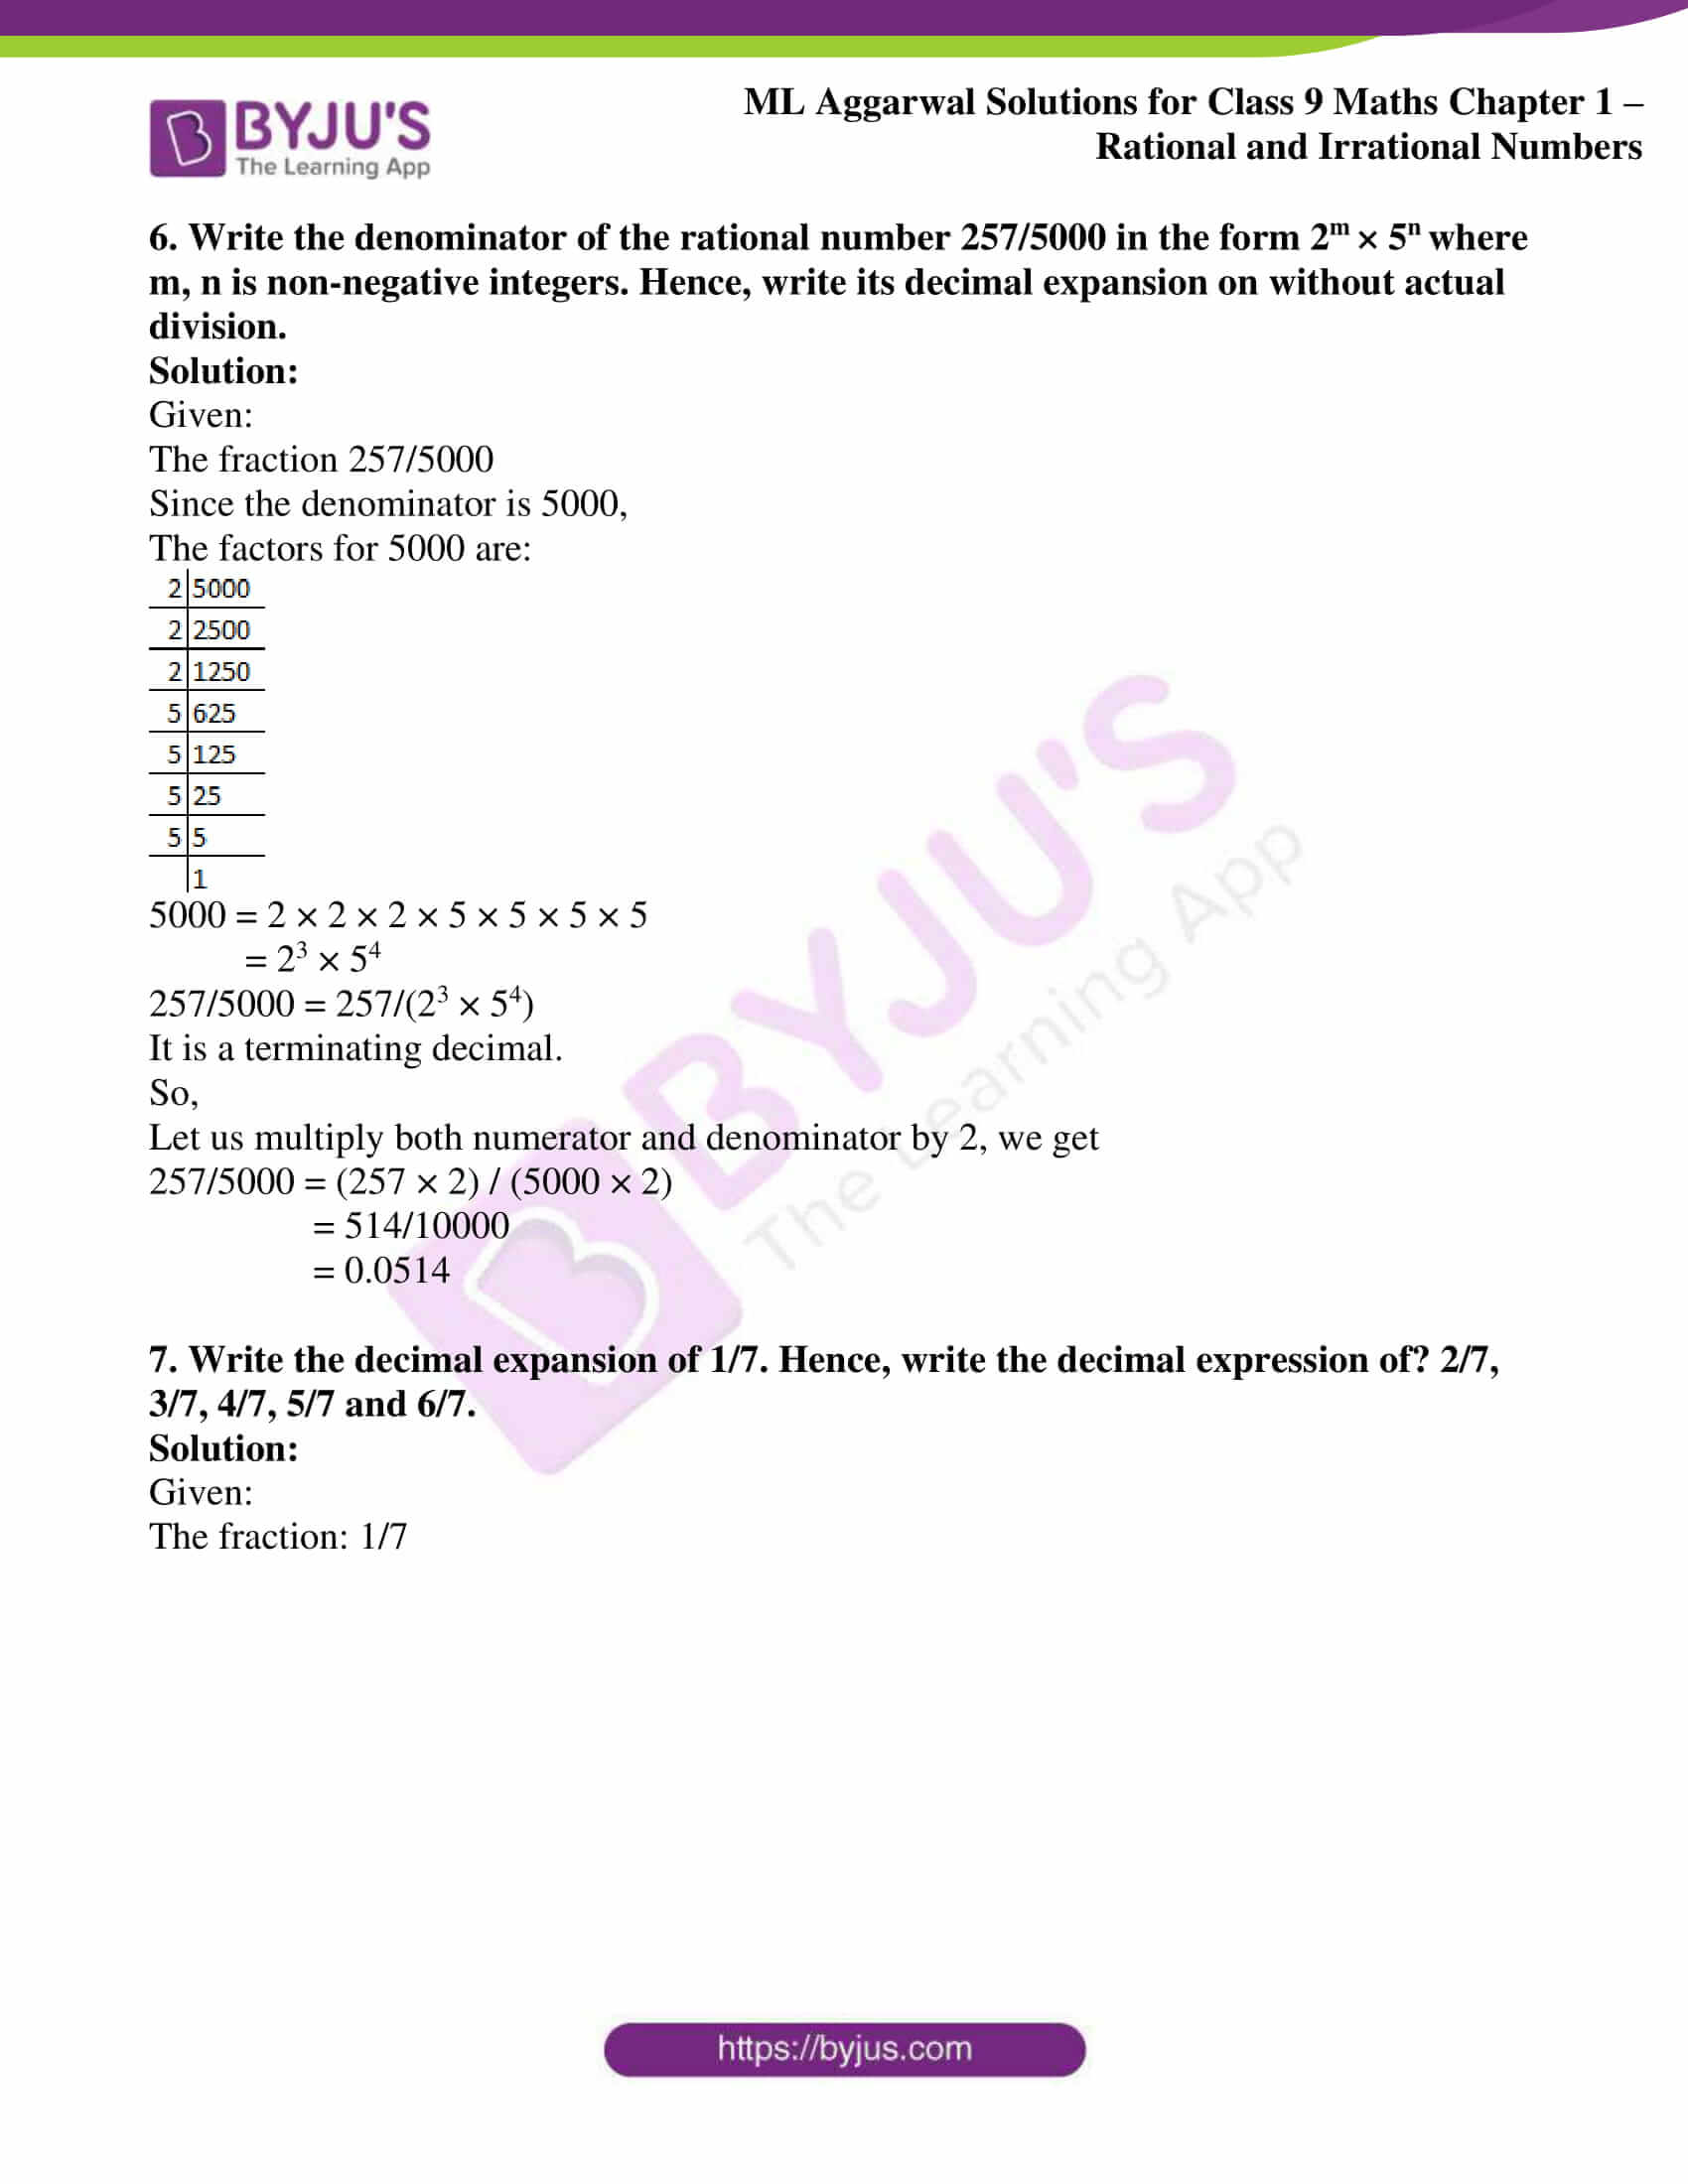 ml aggarwal solutions for class 9 maths chapter 1 27